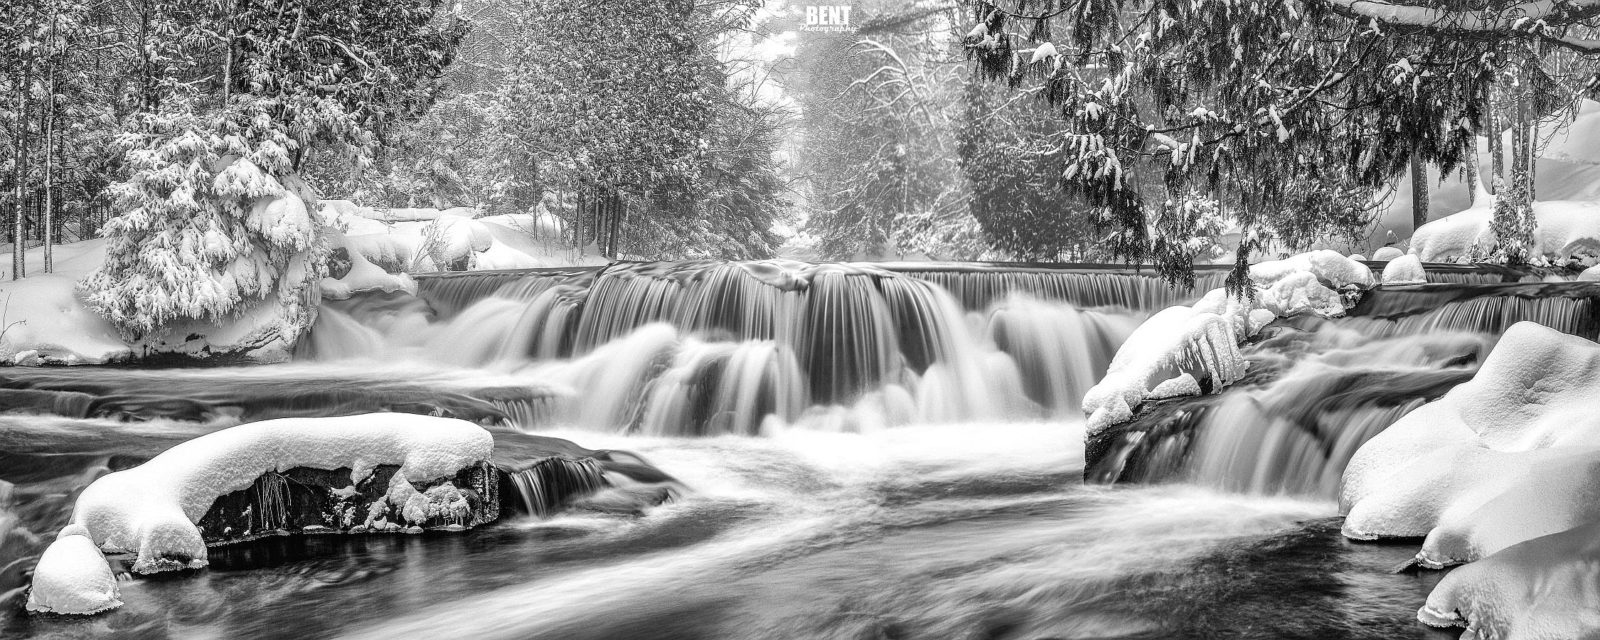 A Bond Falls Winter